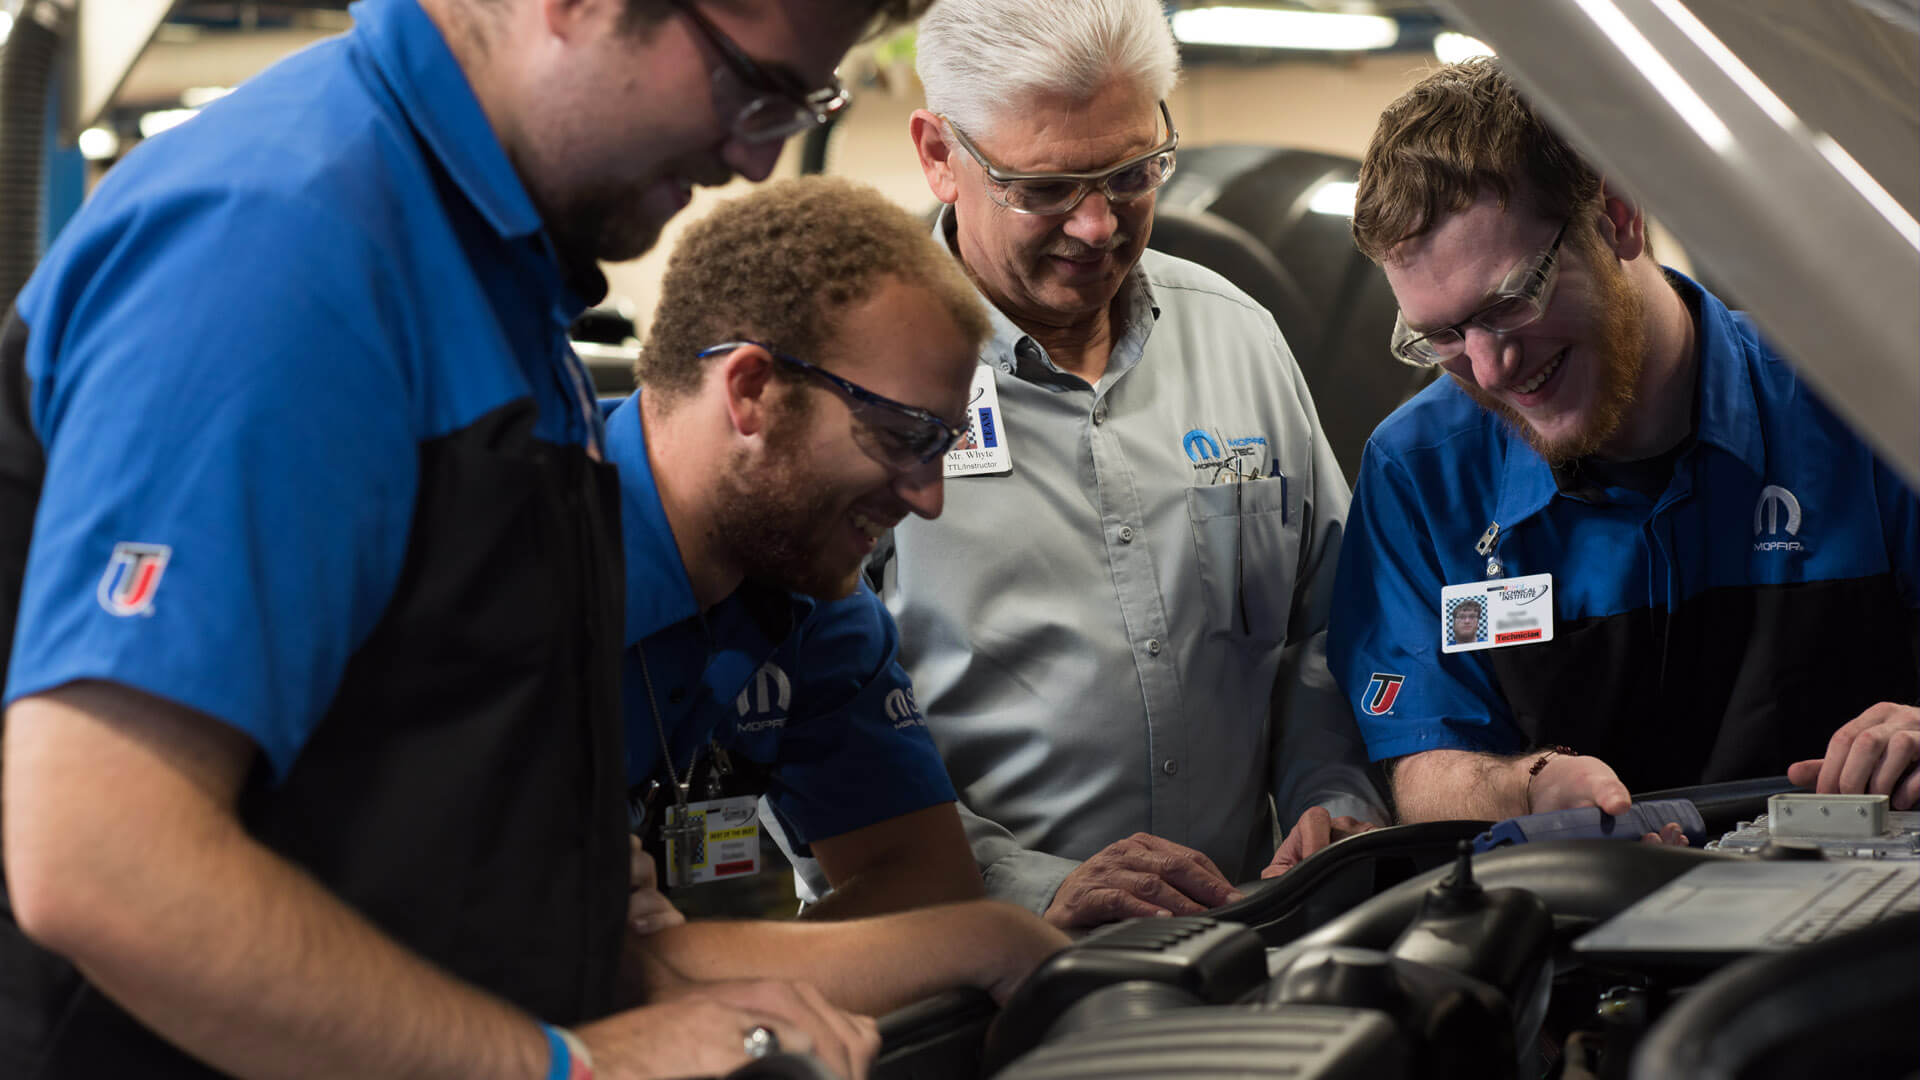 UTI students and instructor smiling in the Mopar lab